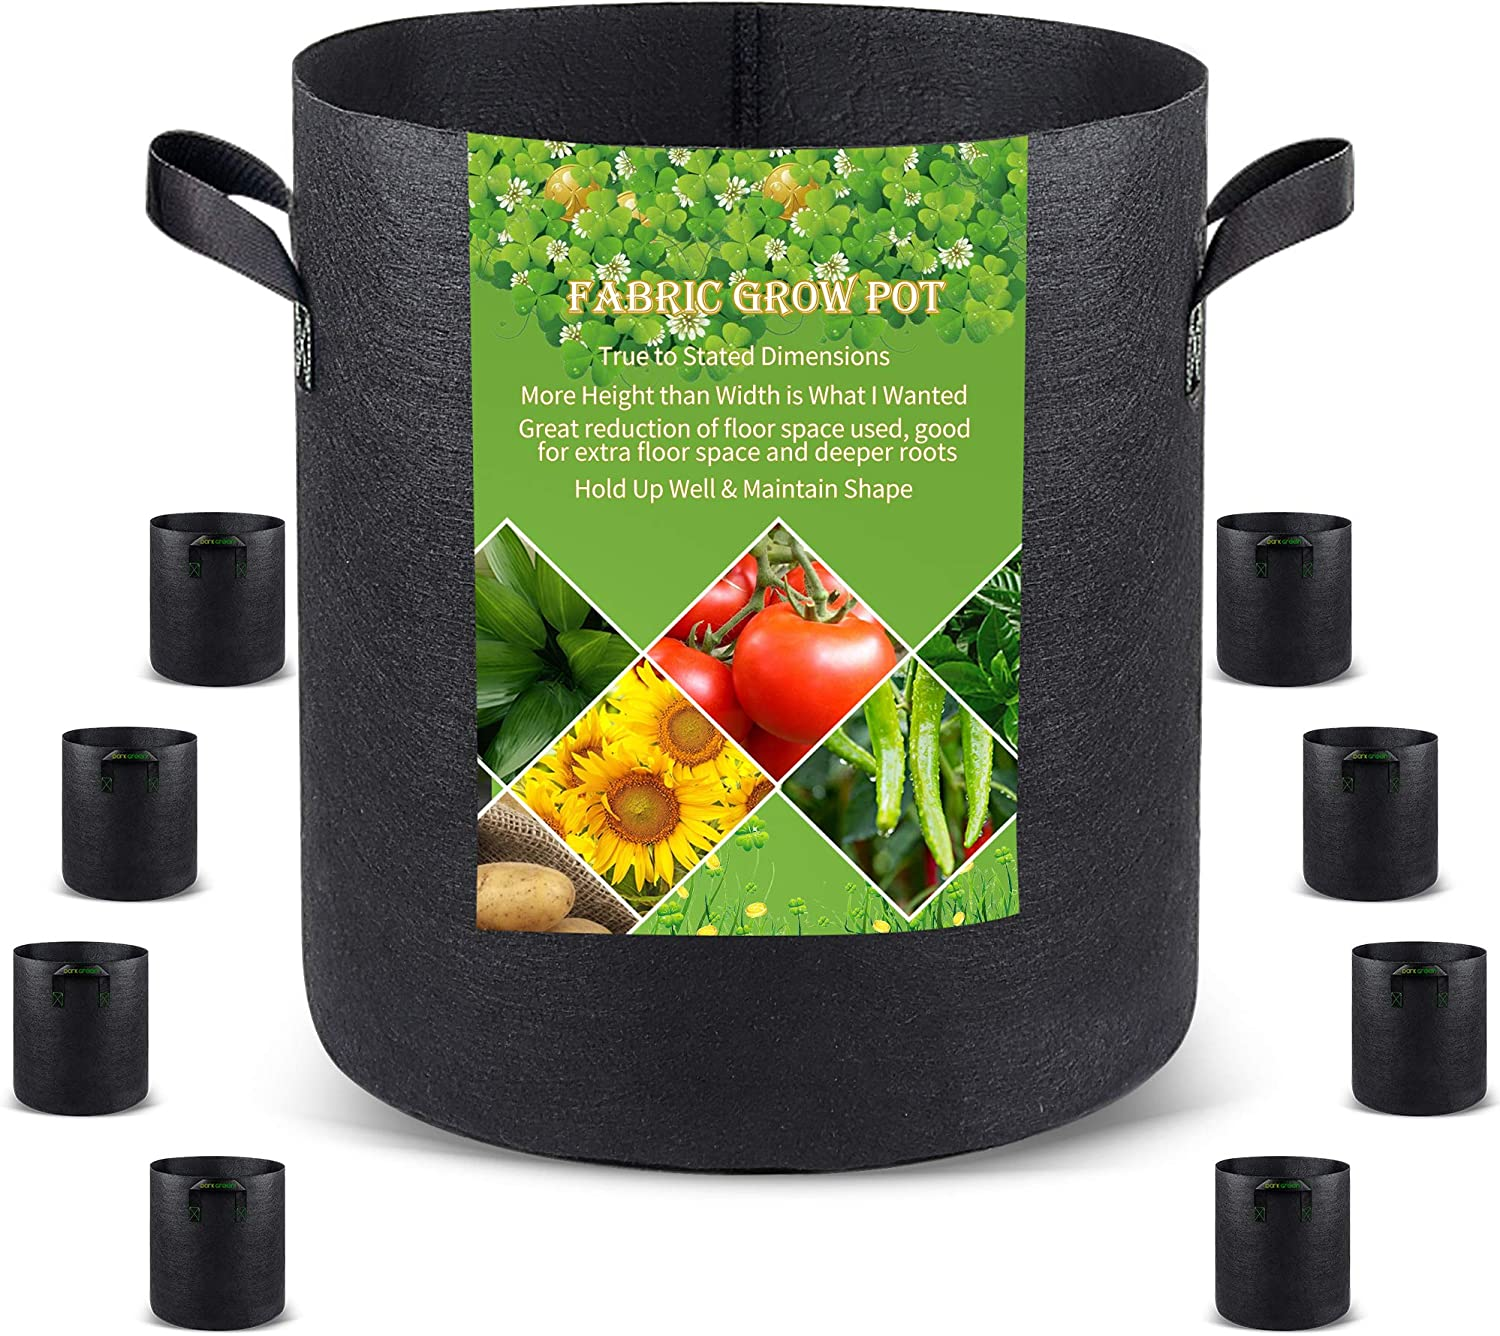 Grow Bags Tall, 7 Gallon 8 Pack Fabric Deep Grow Pots Deep with Handles for Vegetables, Heavy Duty Thickened Nonwoven Aeration Fabric 280G Black Plant Bag for Flowers and Trees